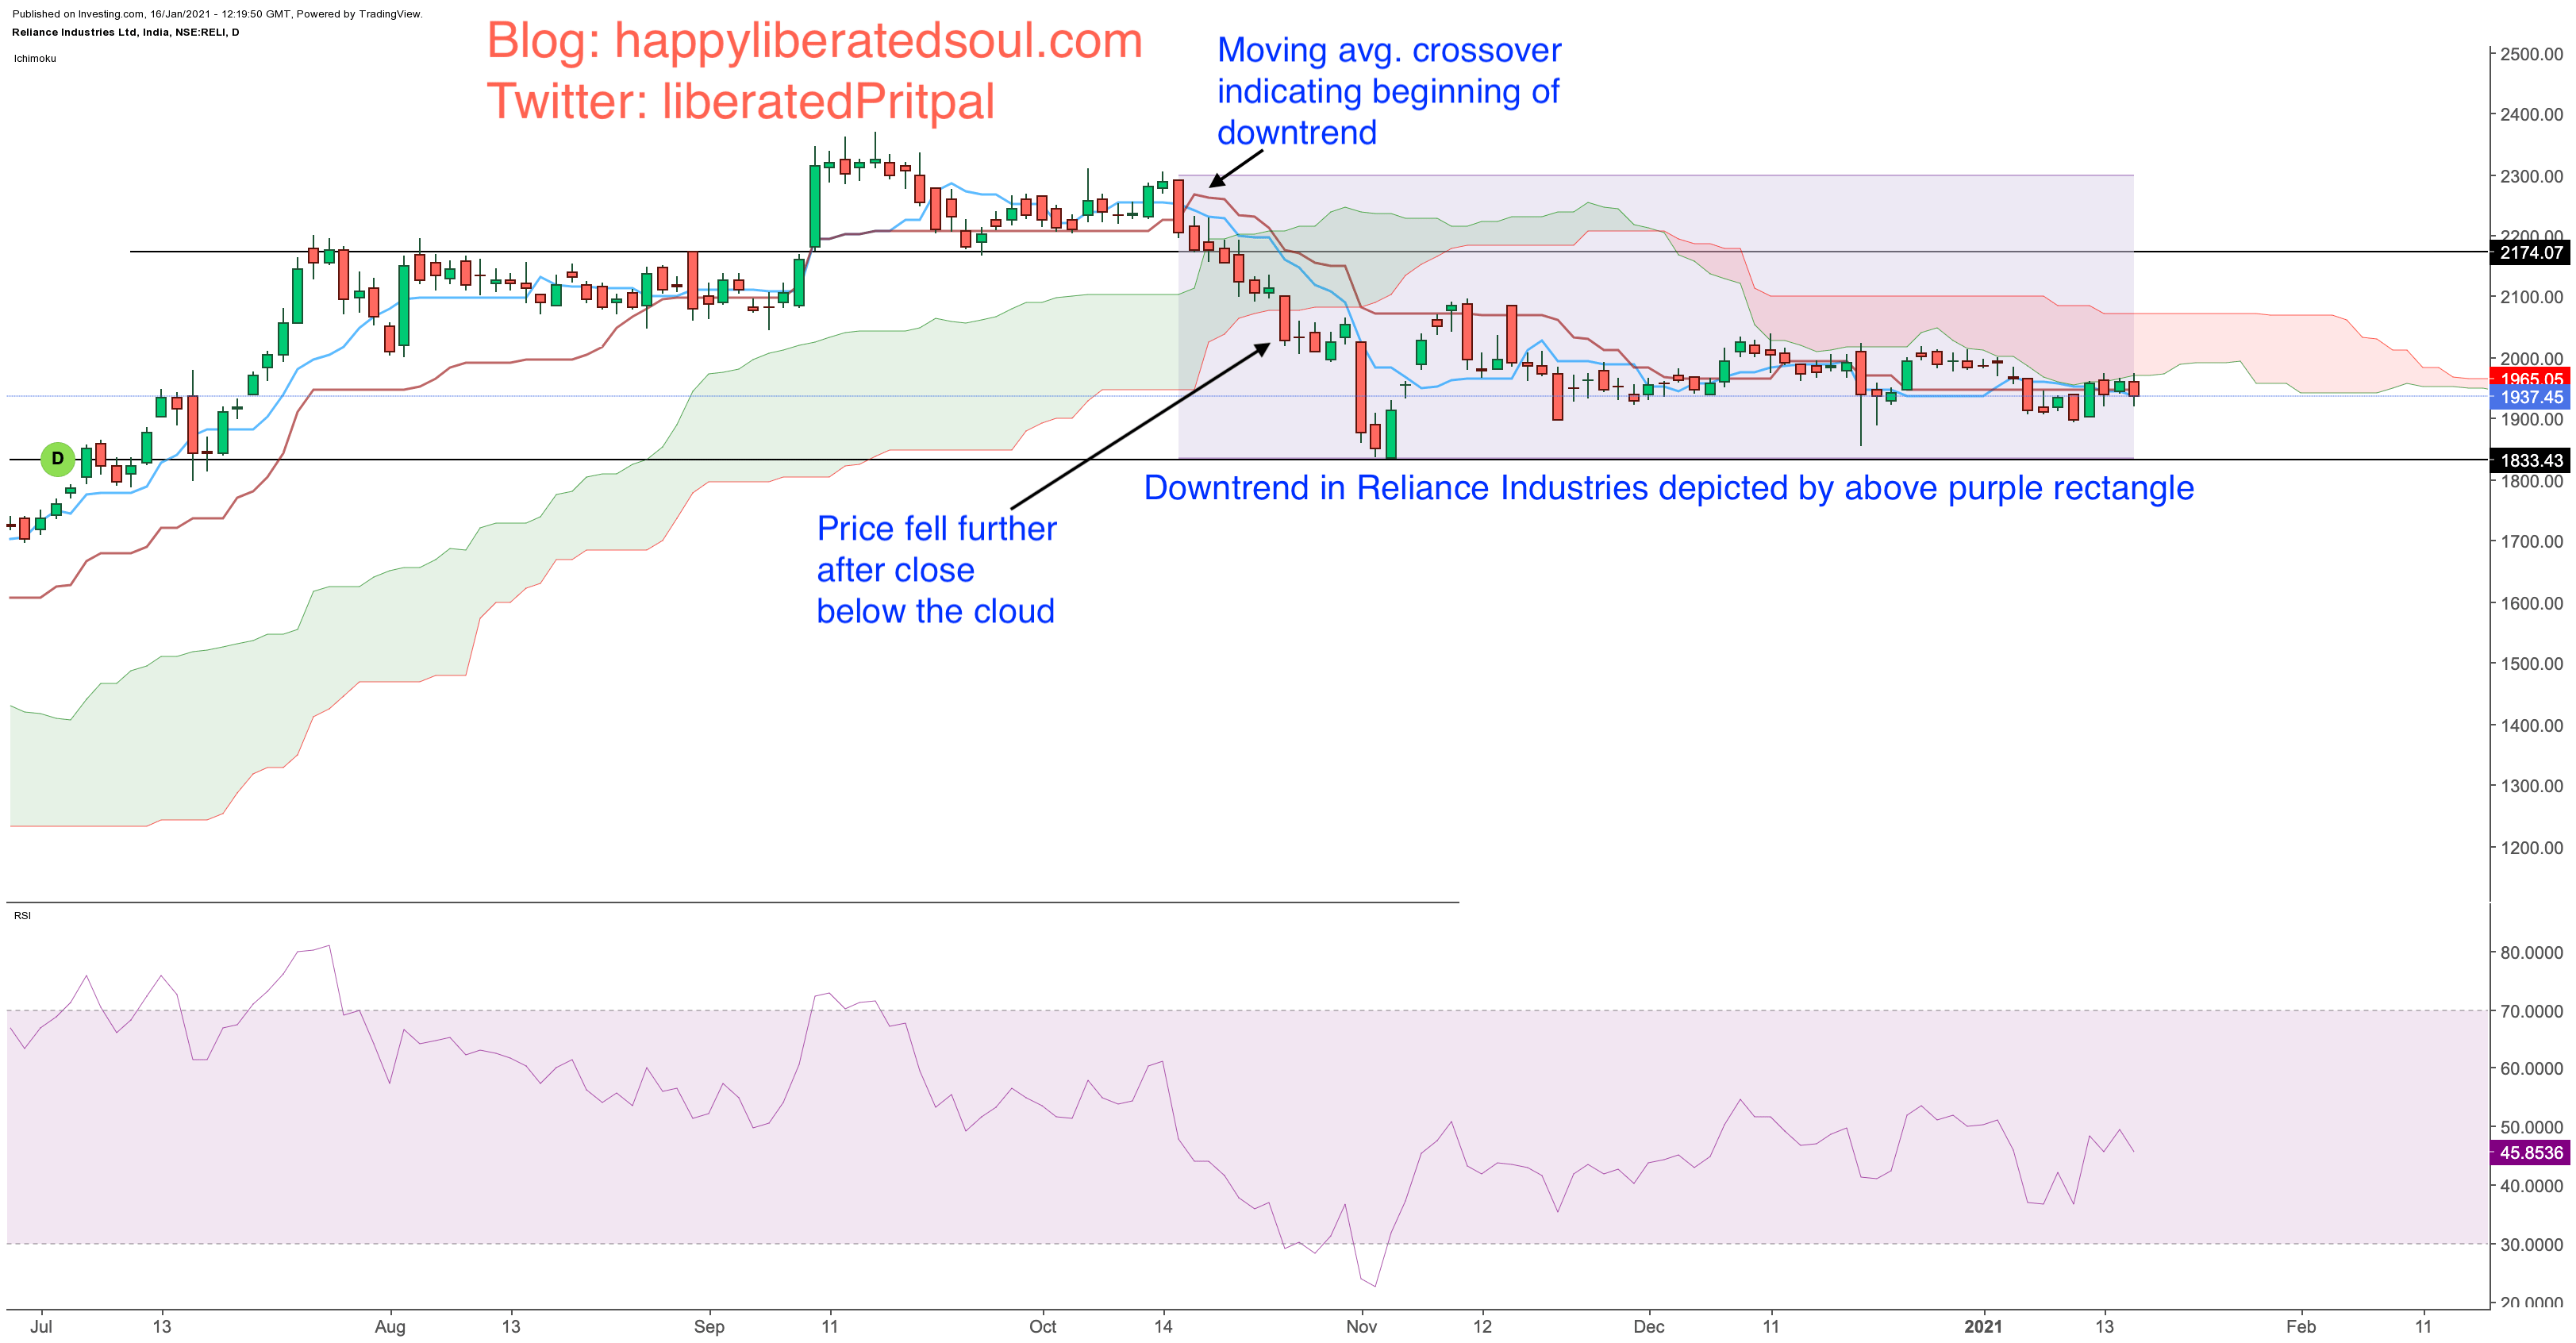 Moving averages bearish crossover with Ichimoku Clouds Trading strategy on Reliance Industries chart on daily timeframe: Happy liberated soul